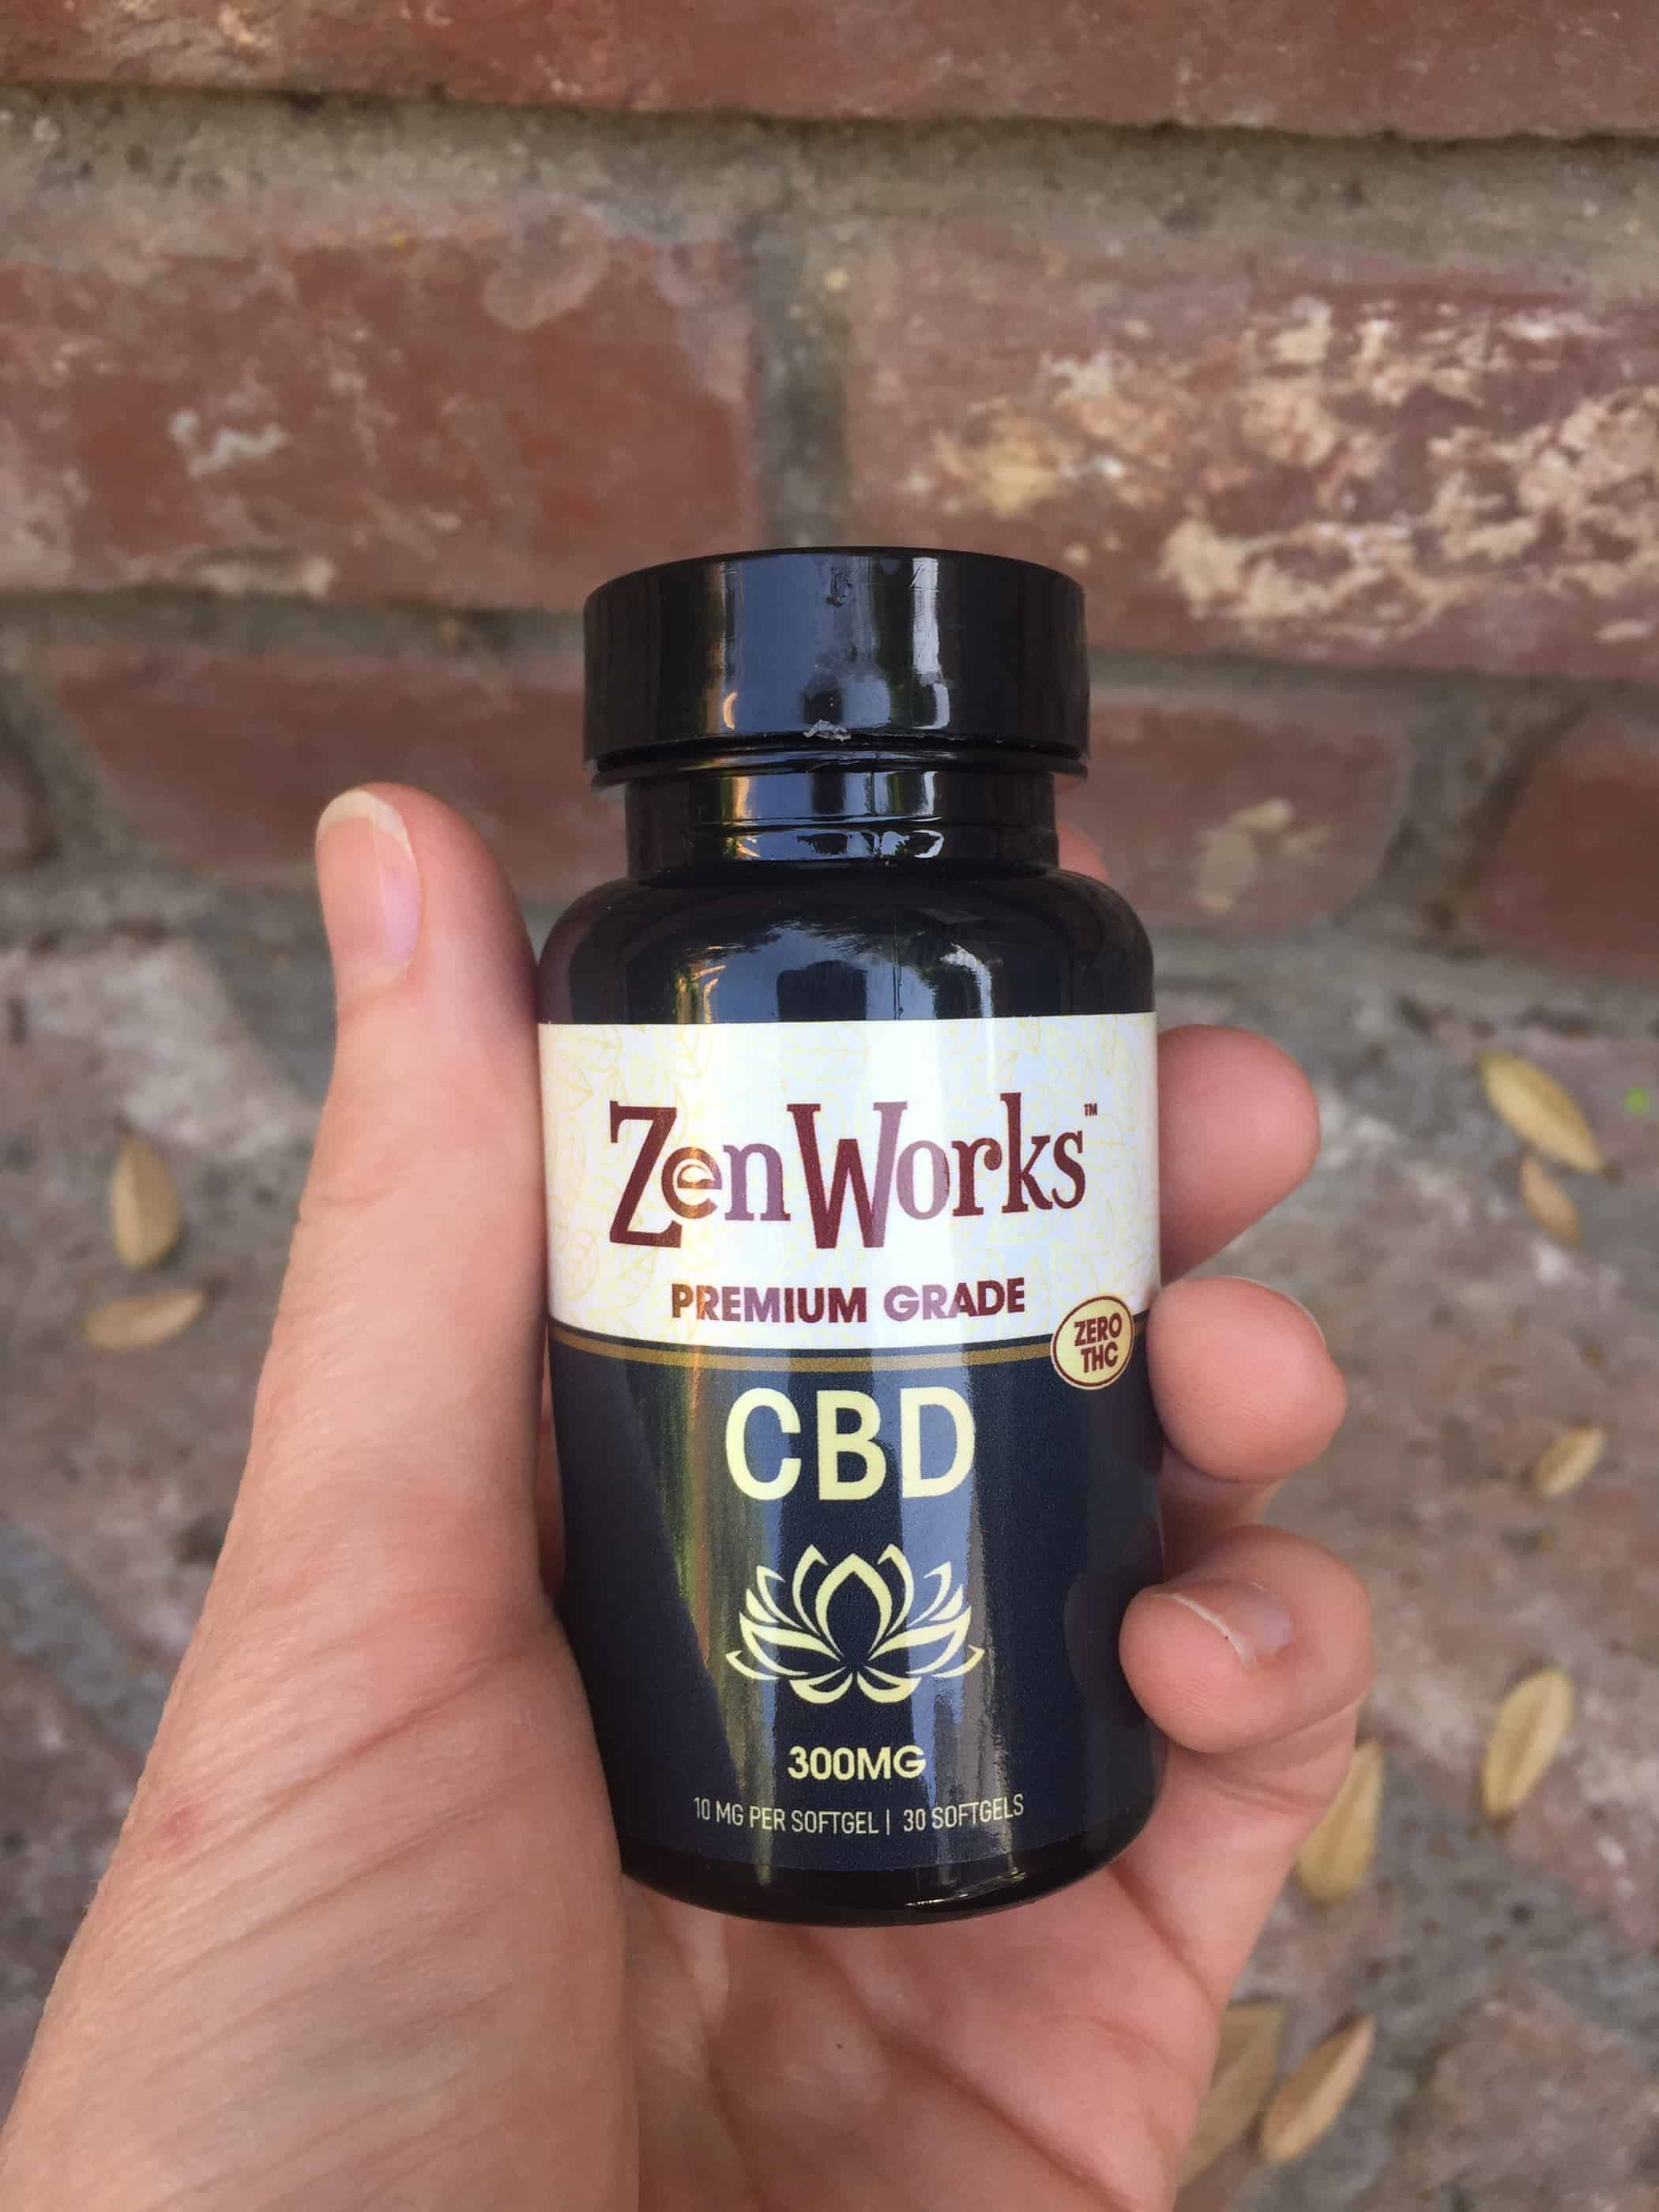 ZenWorks cbd softgel capsules save on cannabis review